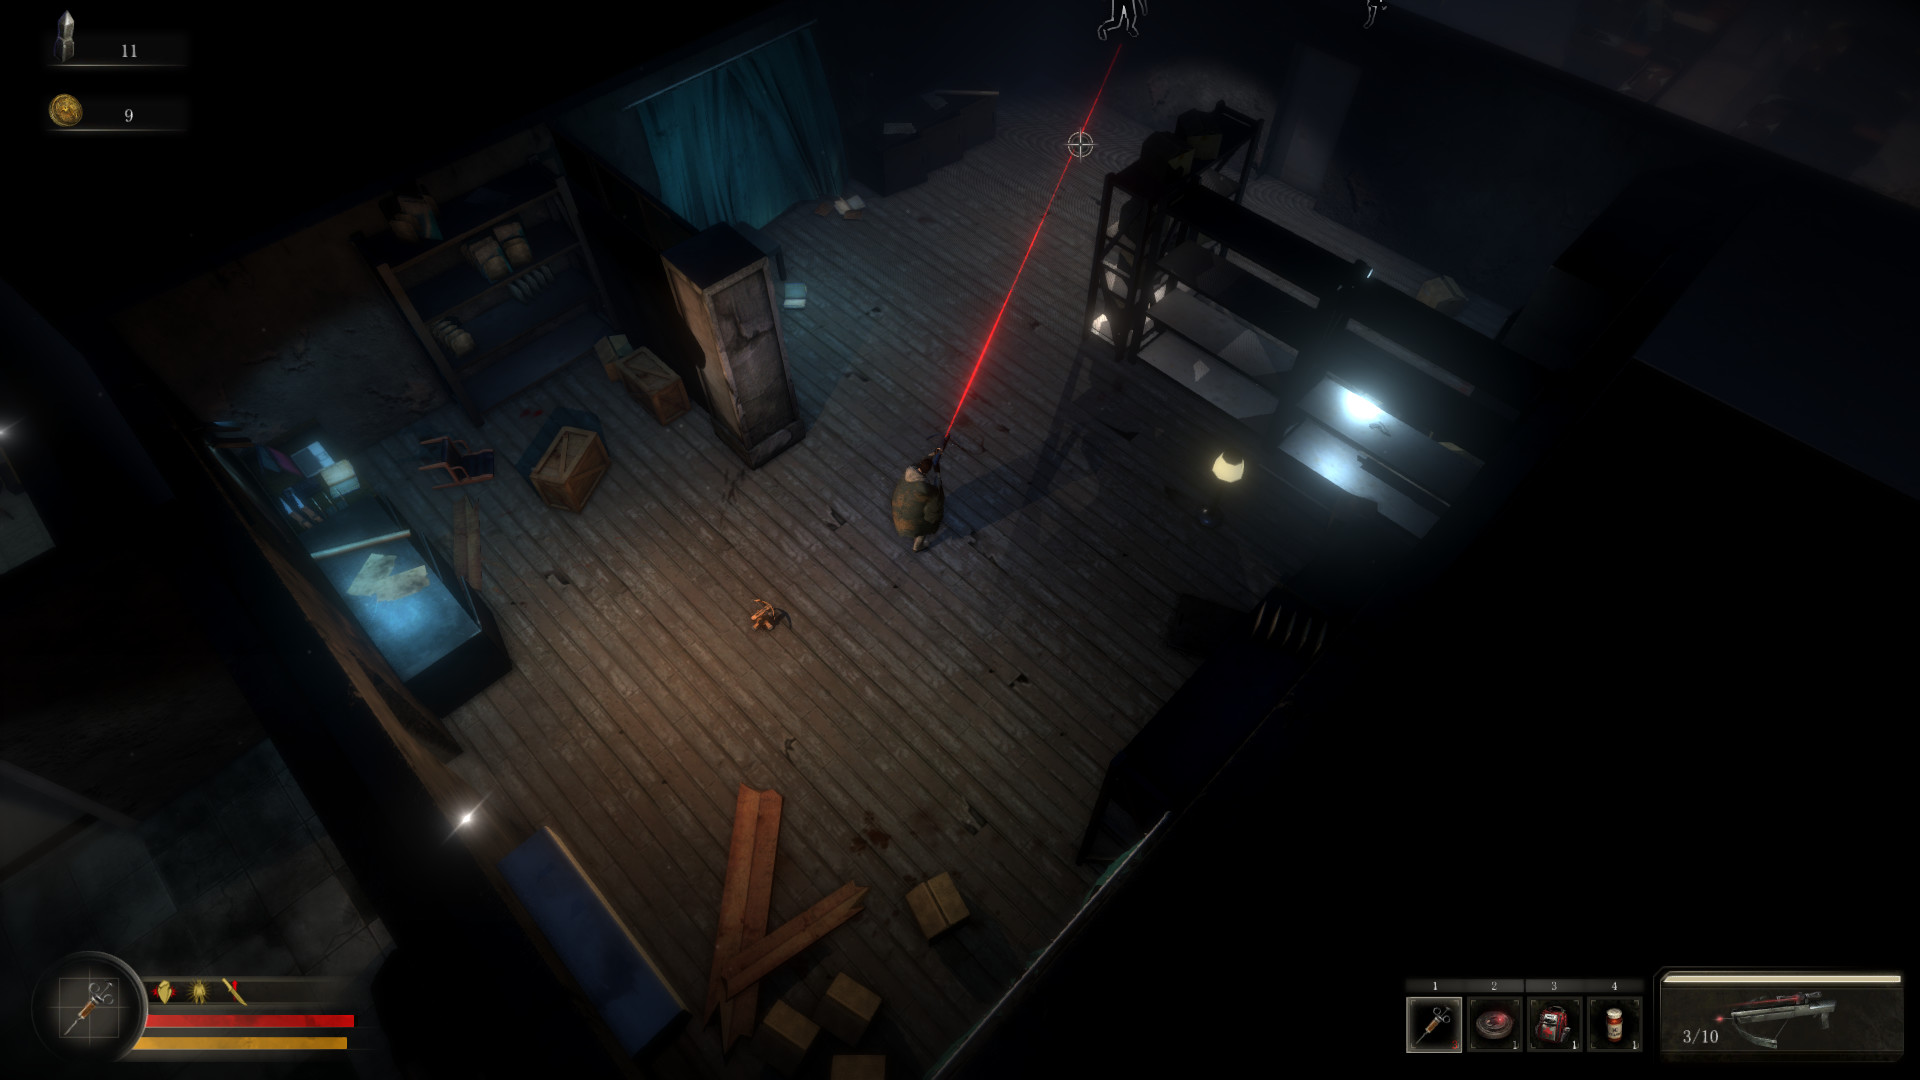 Top-down rogue-like shooter Enlightenment released